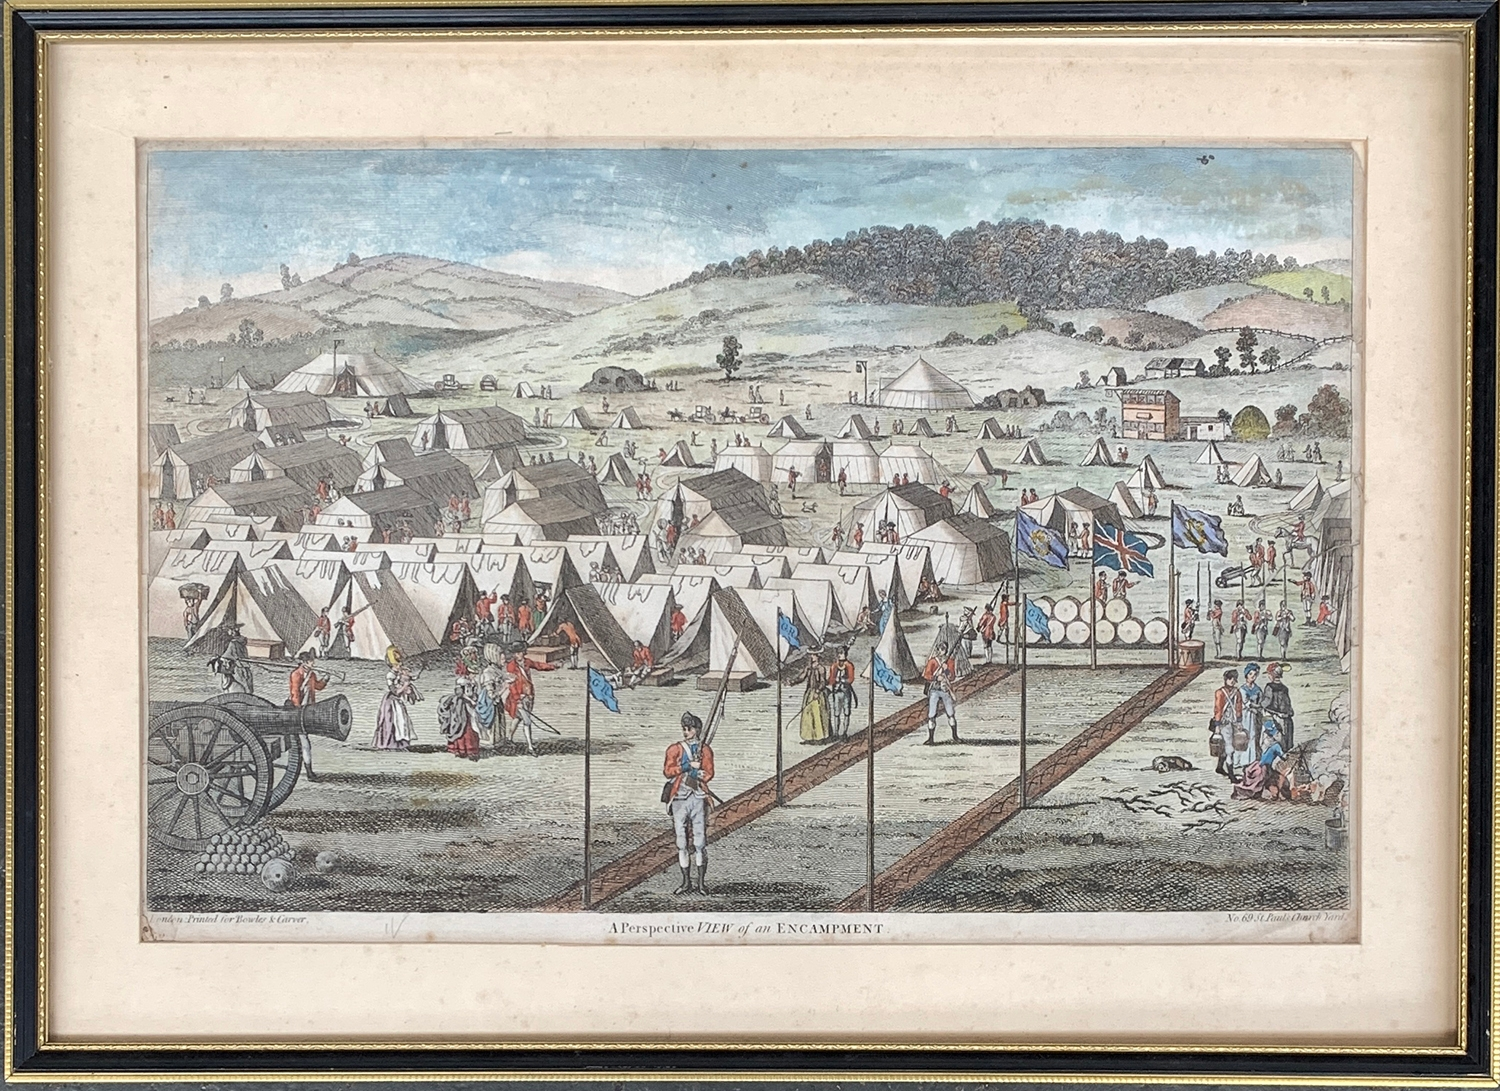 A late 18th century hand coloured print, 'A Perspective View of an Encampment', c.1777, 28x43cm